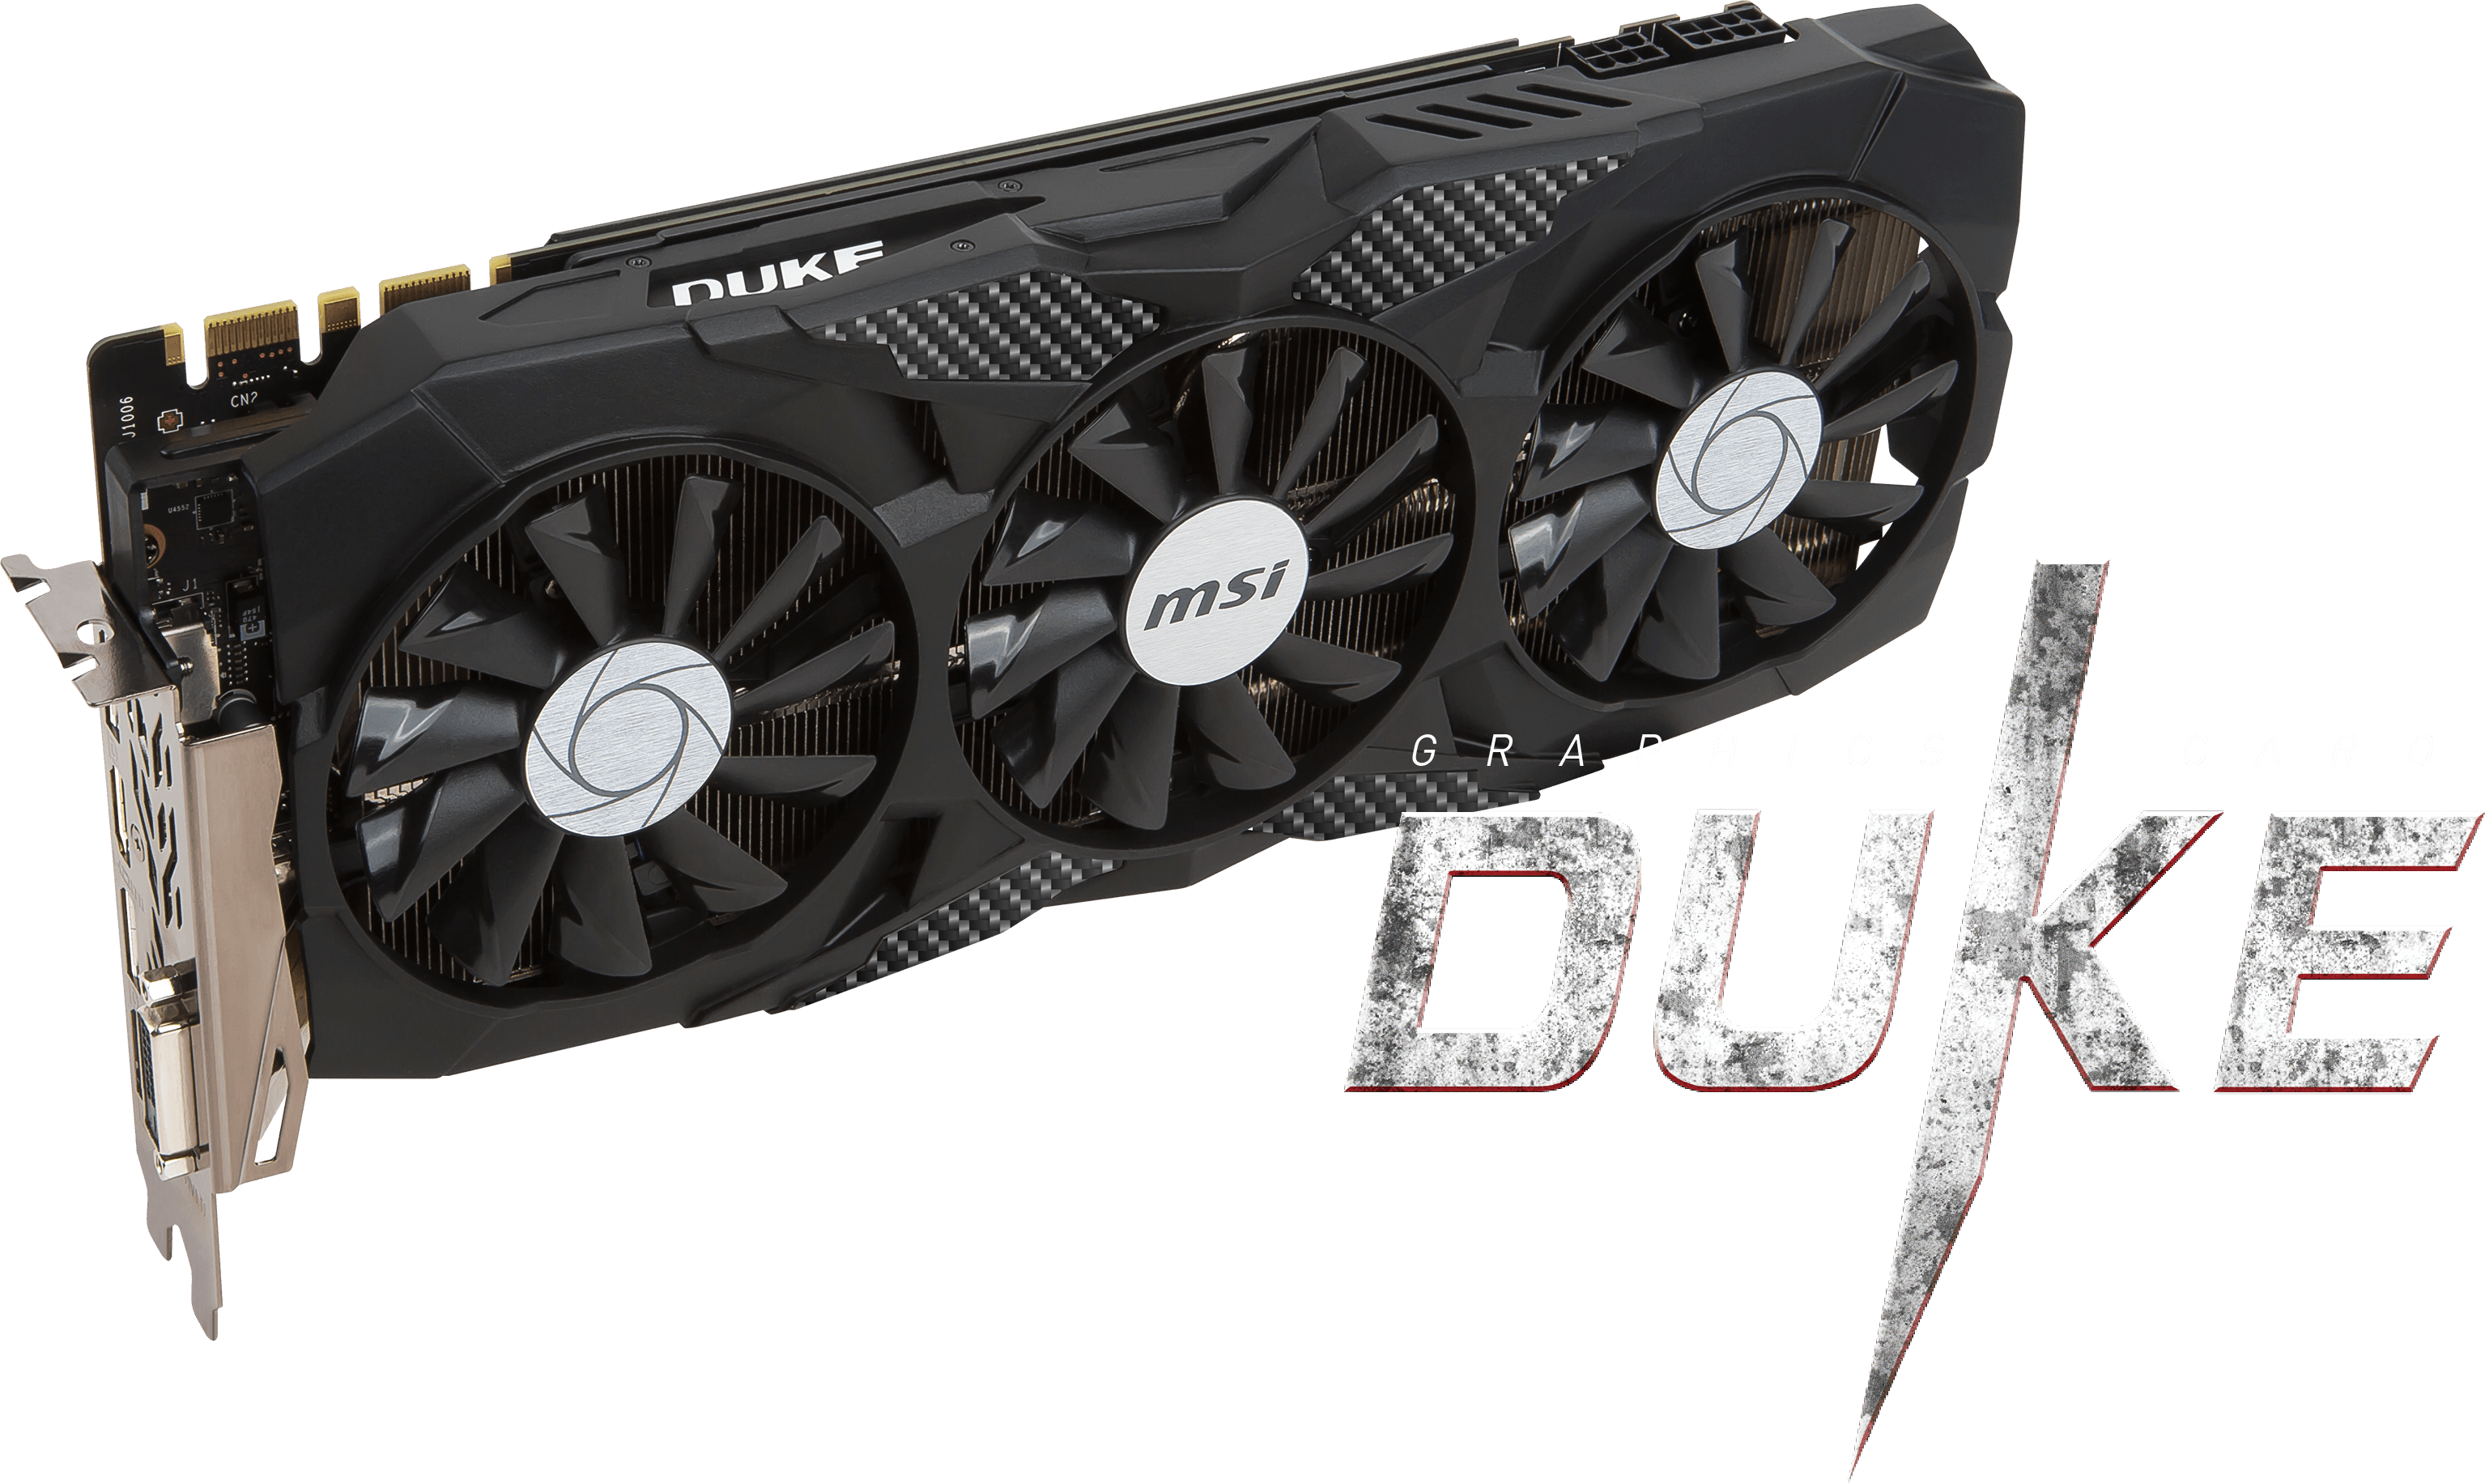 GeForce GTX 1070 Ti DUKE 8G | Graphics card - The world leader in